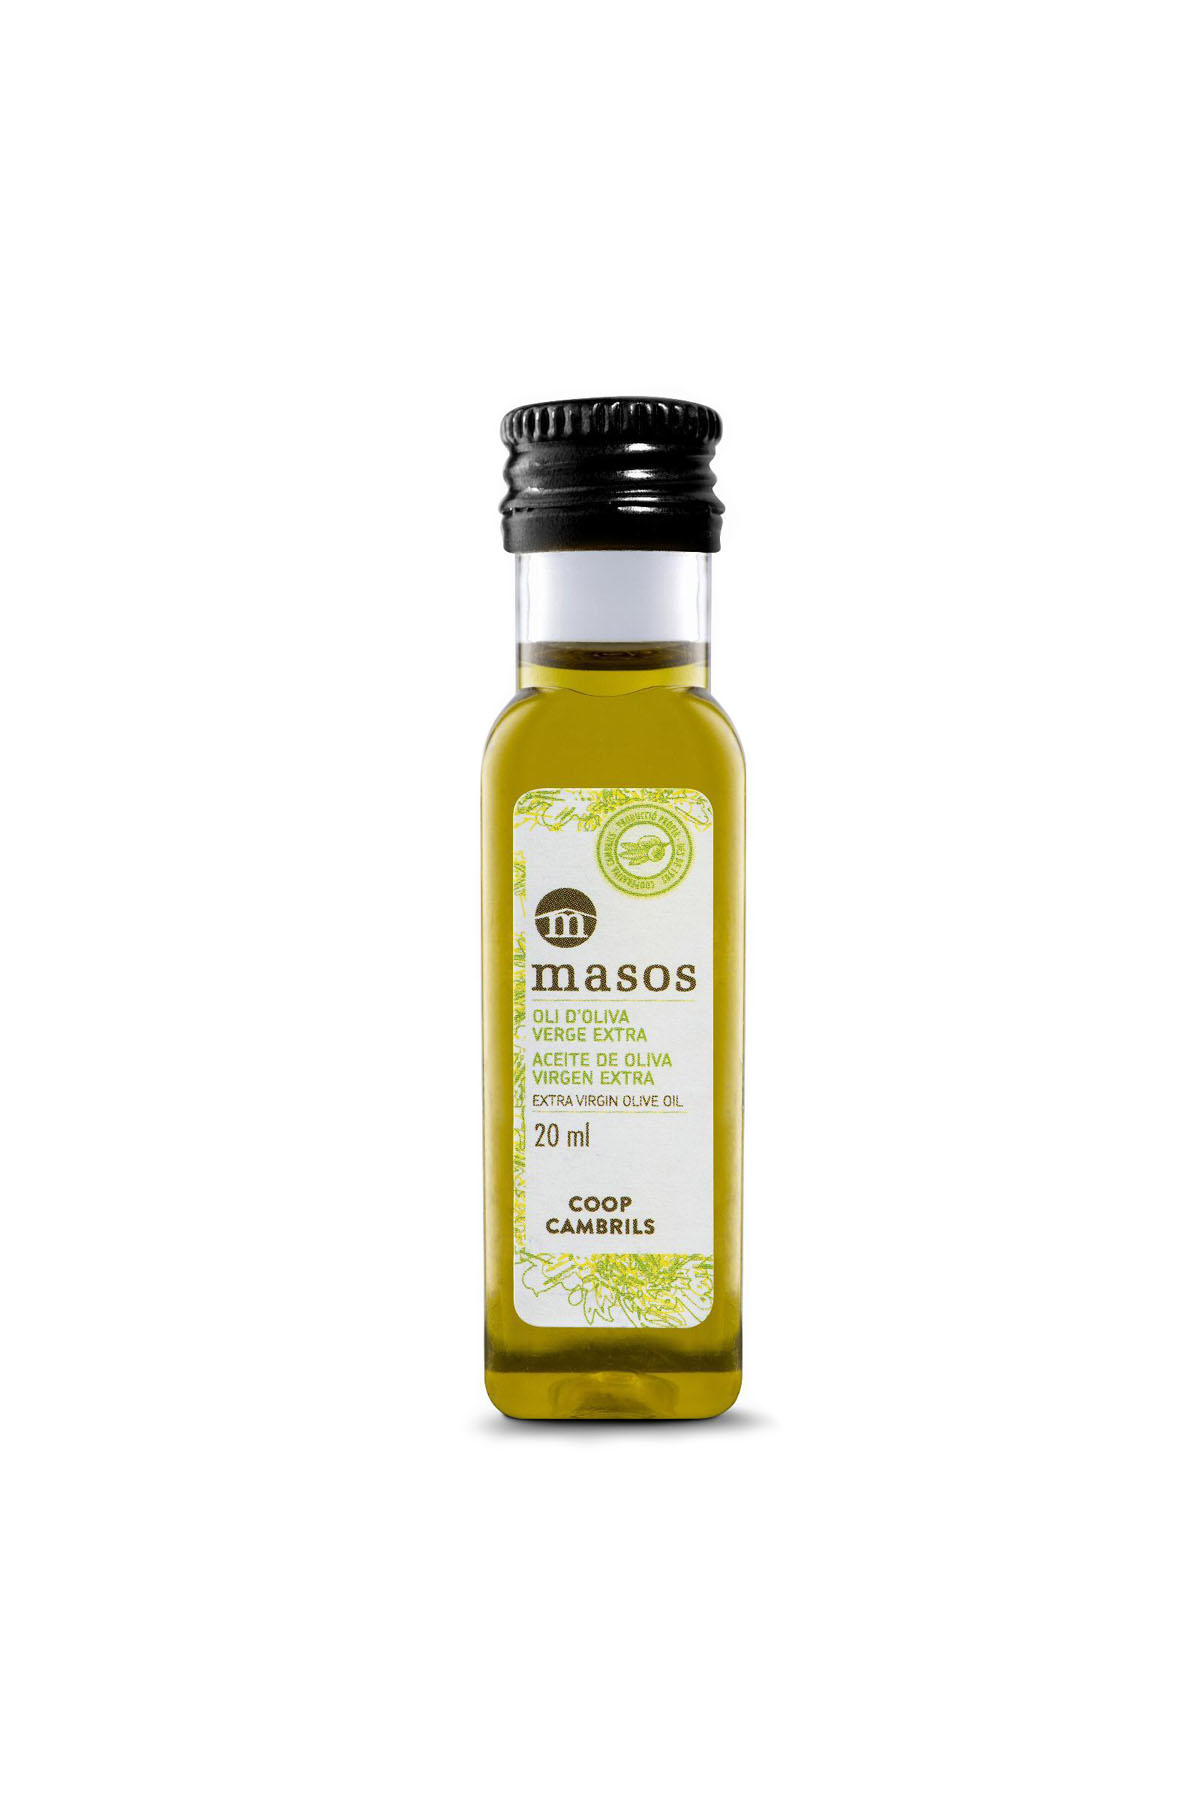 Masos Coupage Extra Virgin Olive Oil bottle SINGLE DOSE 40 x 20 ml